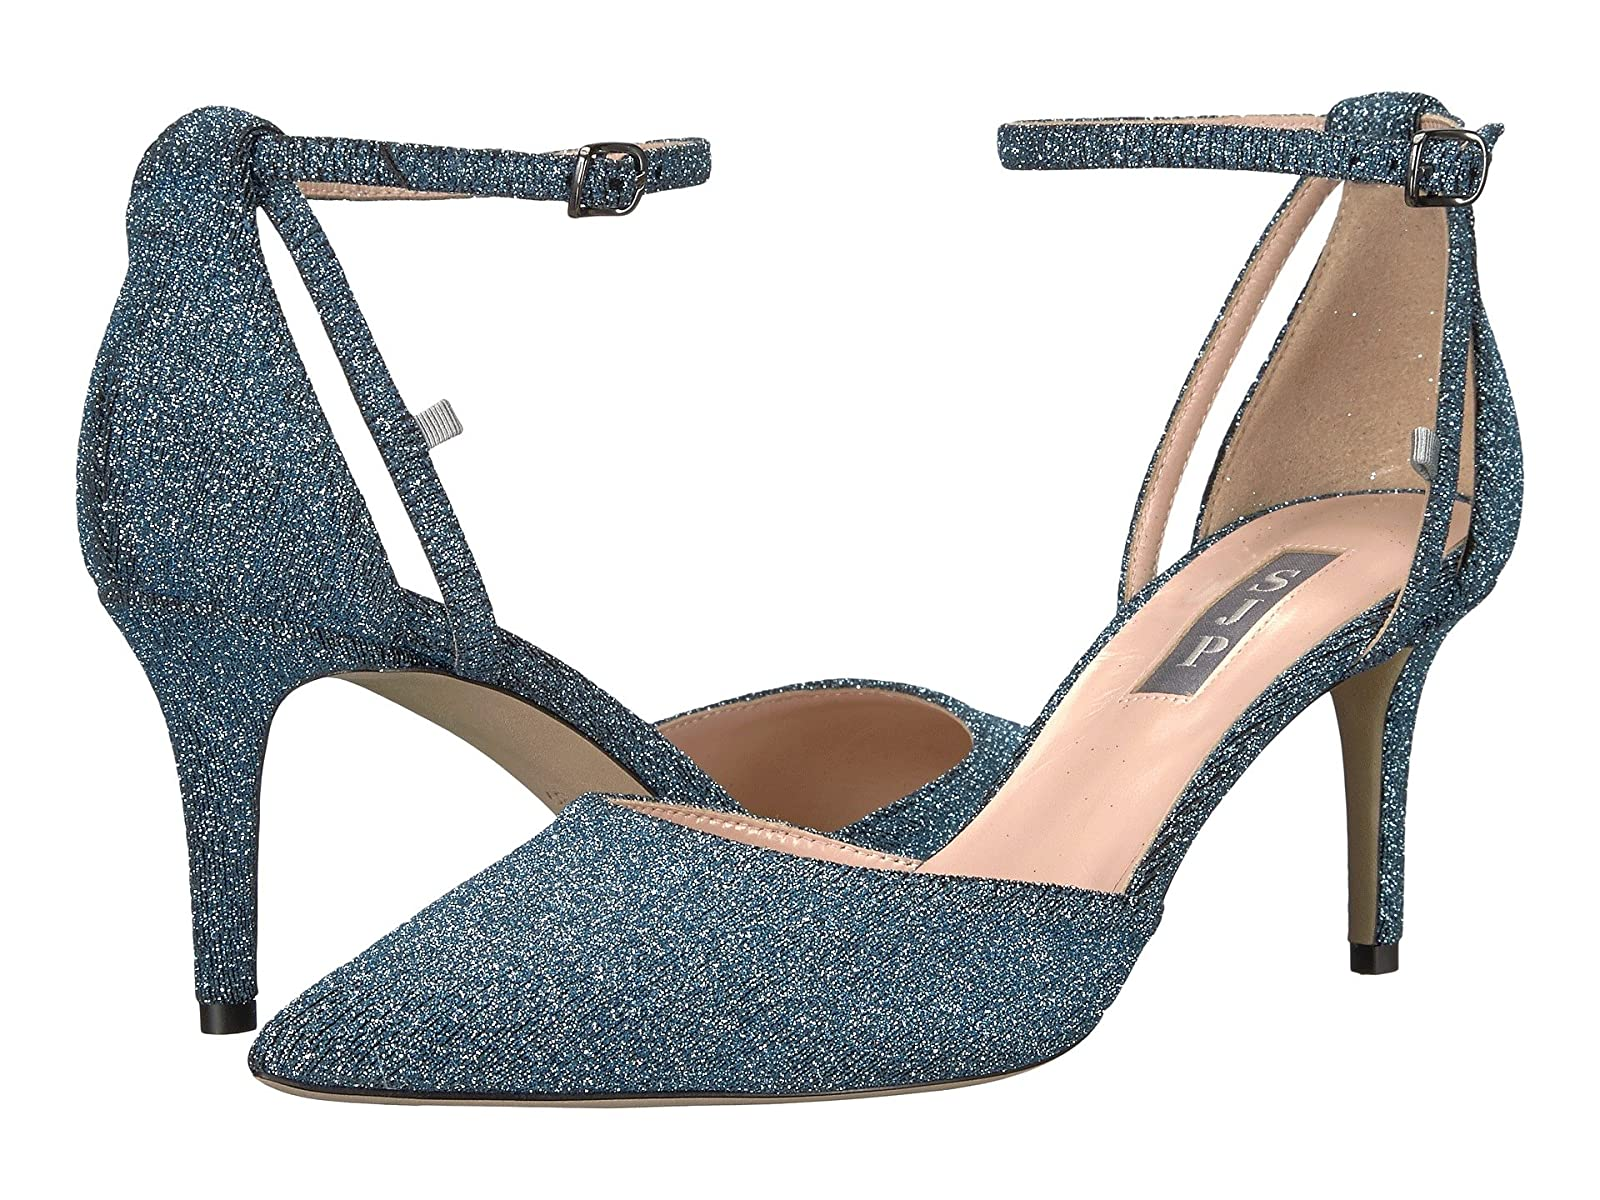 SJP by Sarah Jessica Parker QuestCheap and distinctive eye-catching shoes